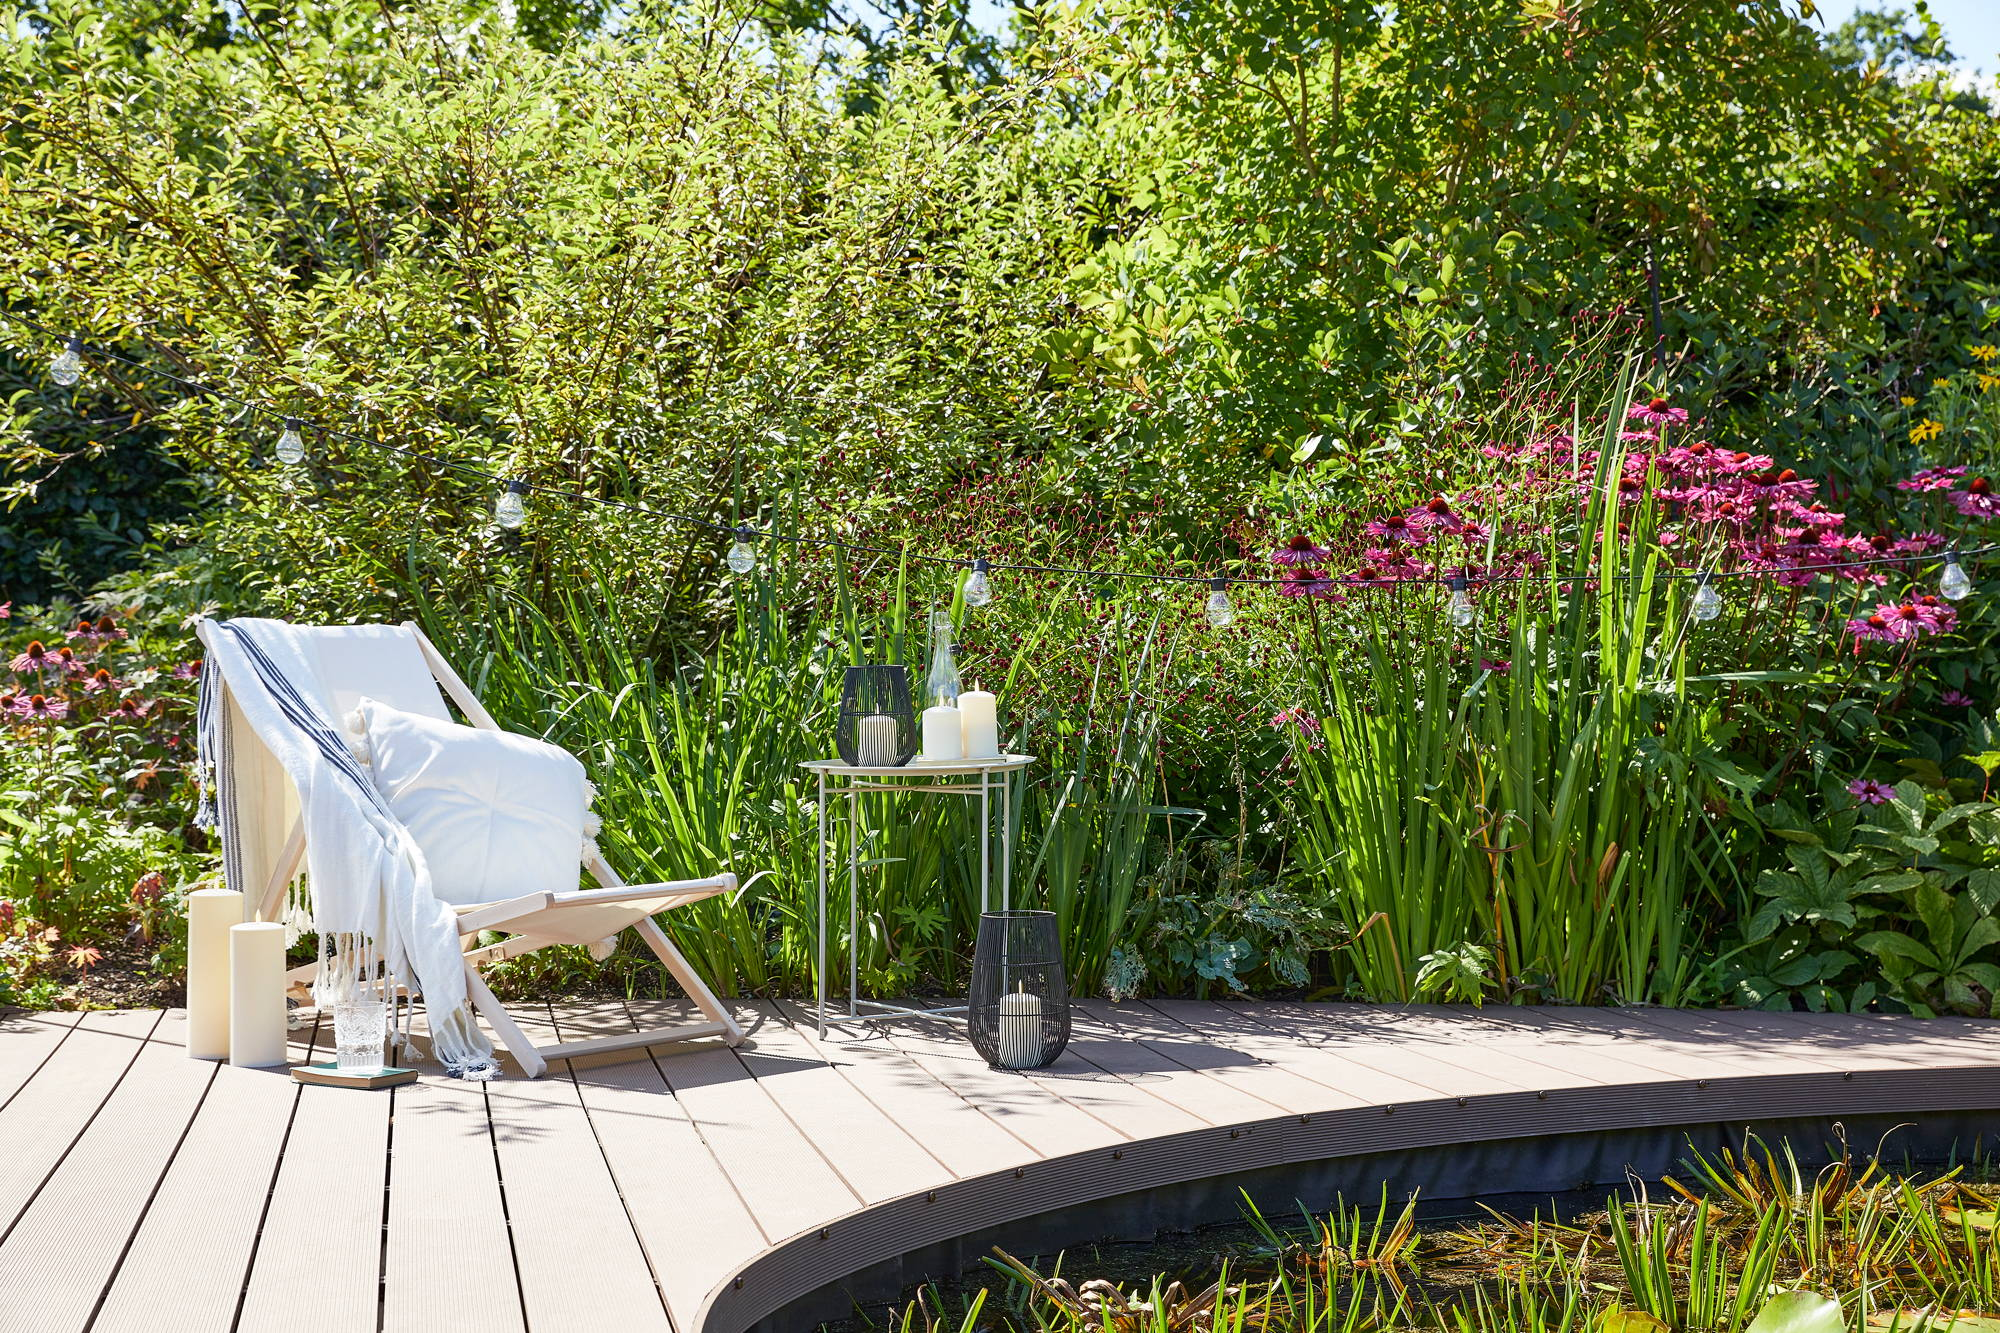 Garden setting with deck chair, pond and bushes featuring lanterns, LED candles and festoons